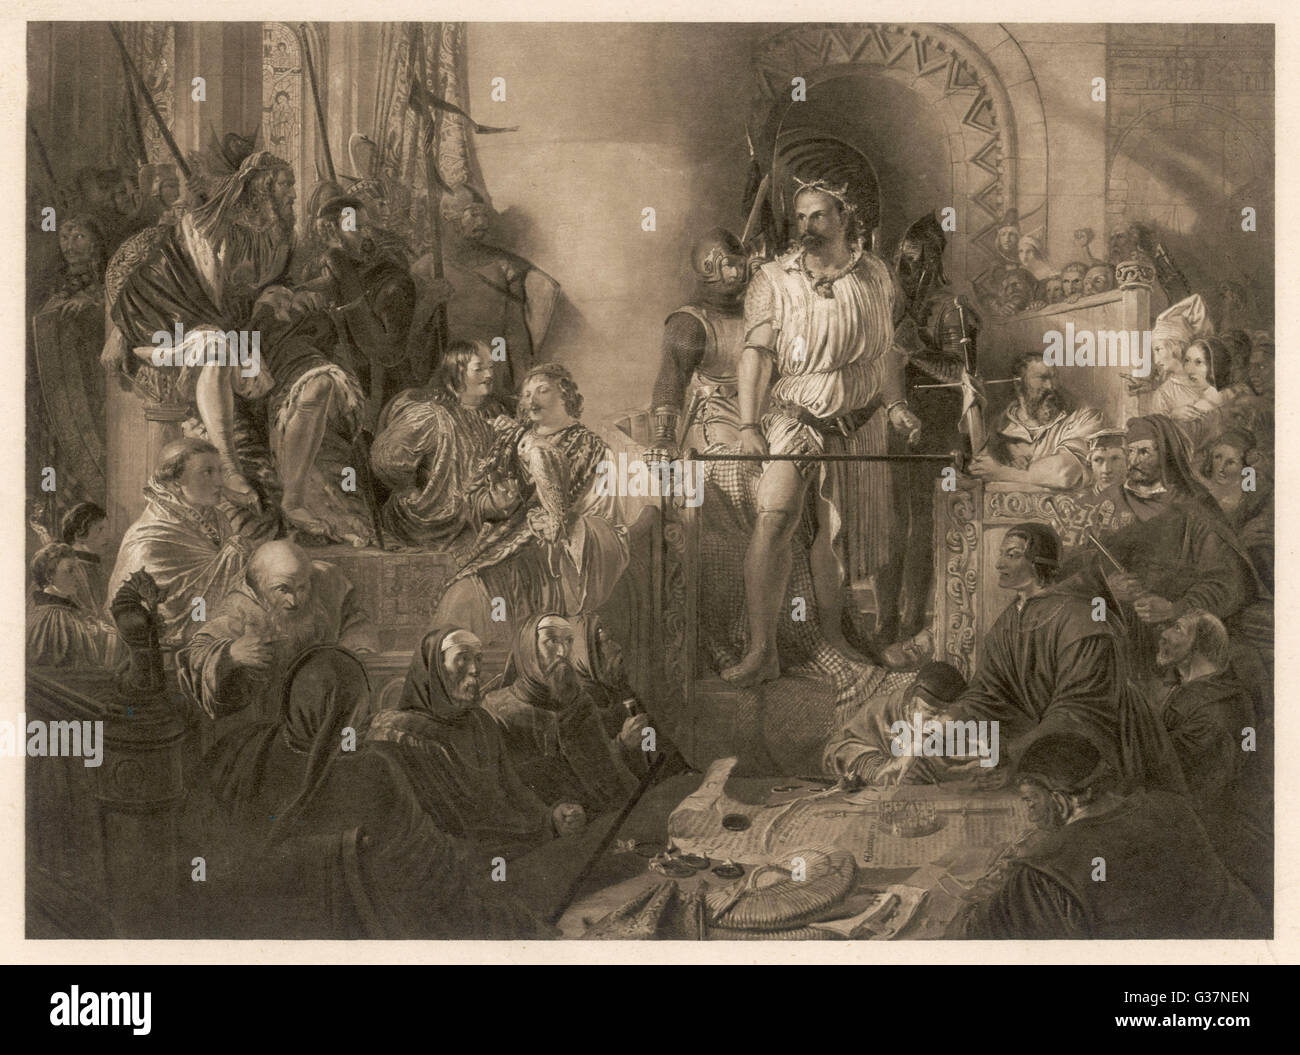 SIR WILLIAM WALLACE Scottish patriot and leader  of revolt, on trial before Edward I.       Date: 1270? - 1305 - Stock Image